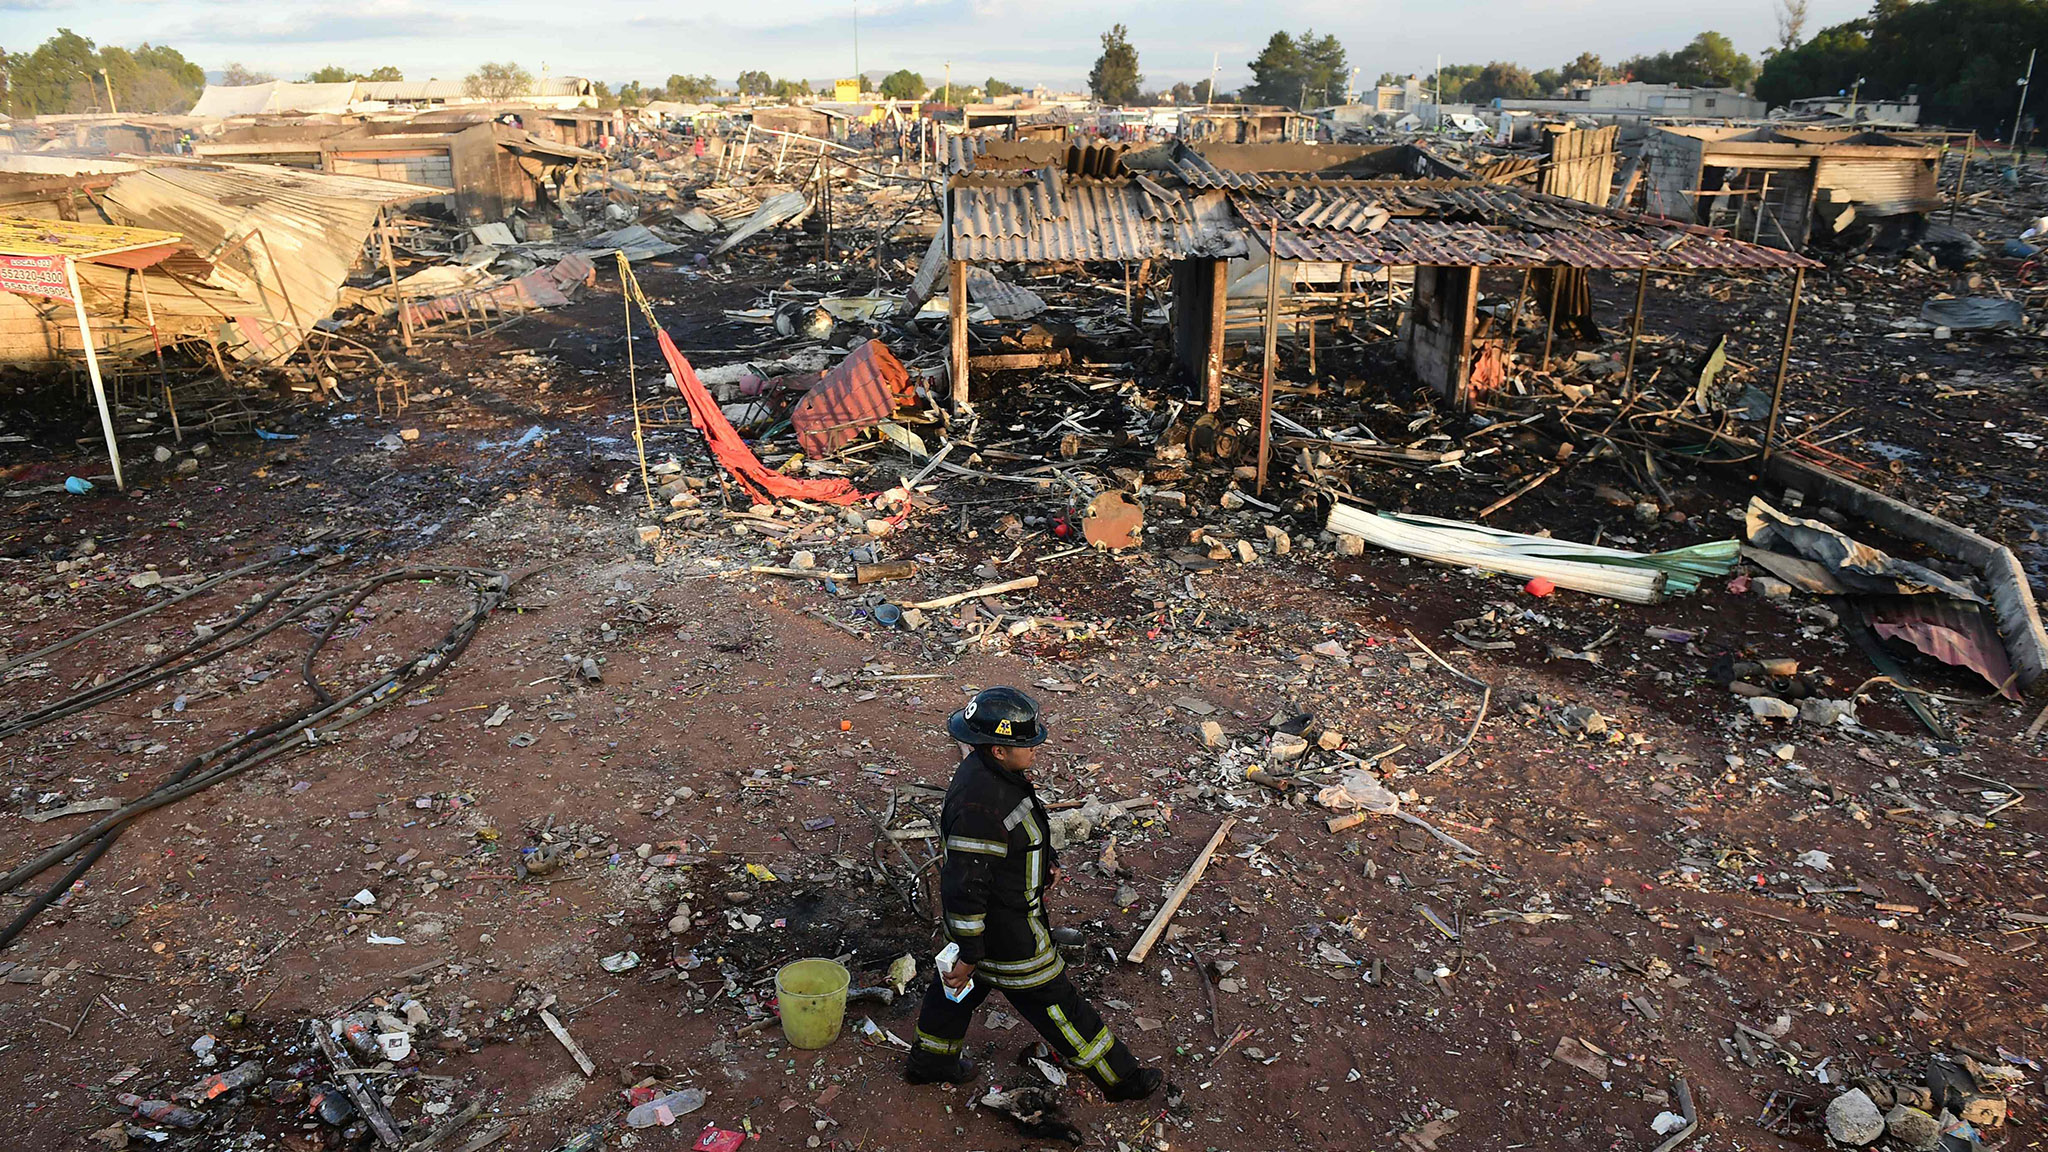 Firefighters work amid the debris